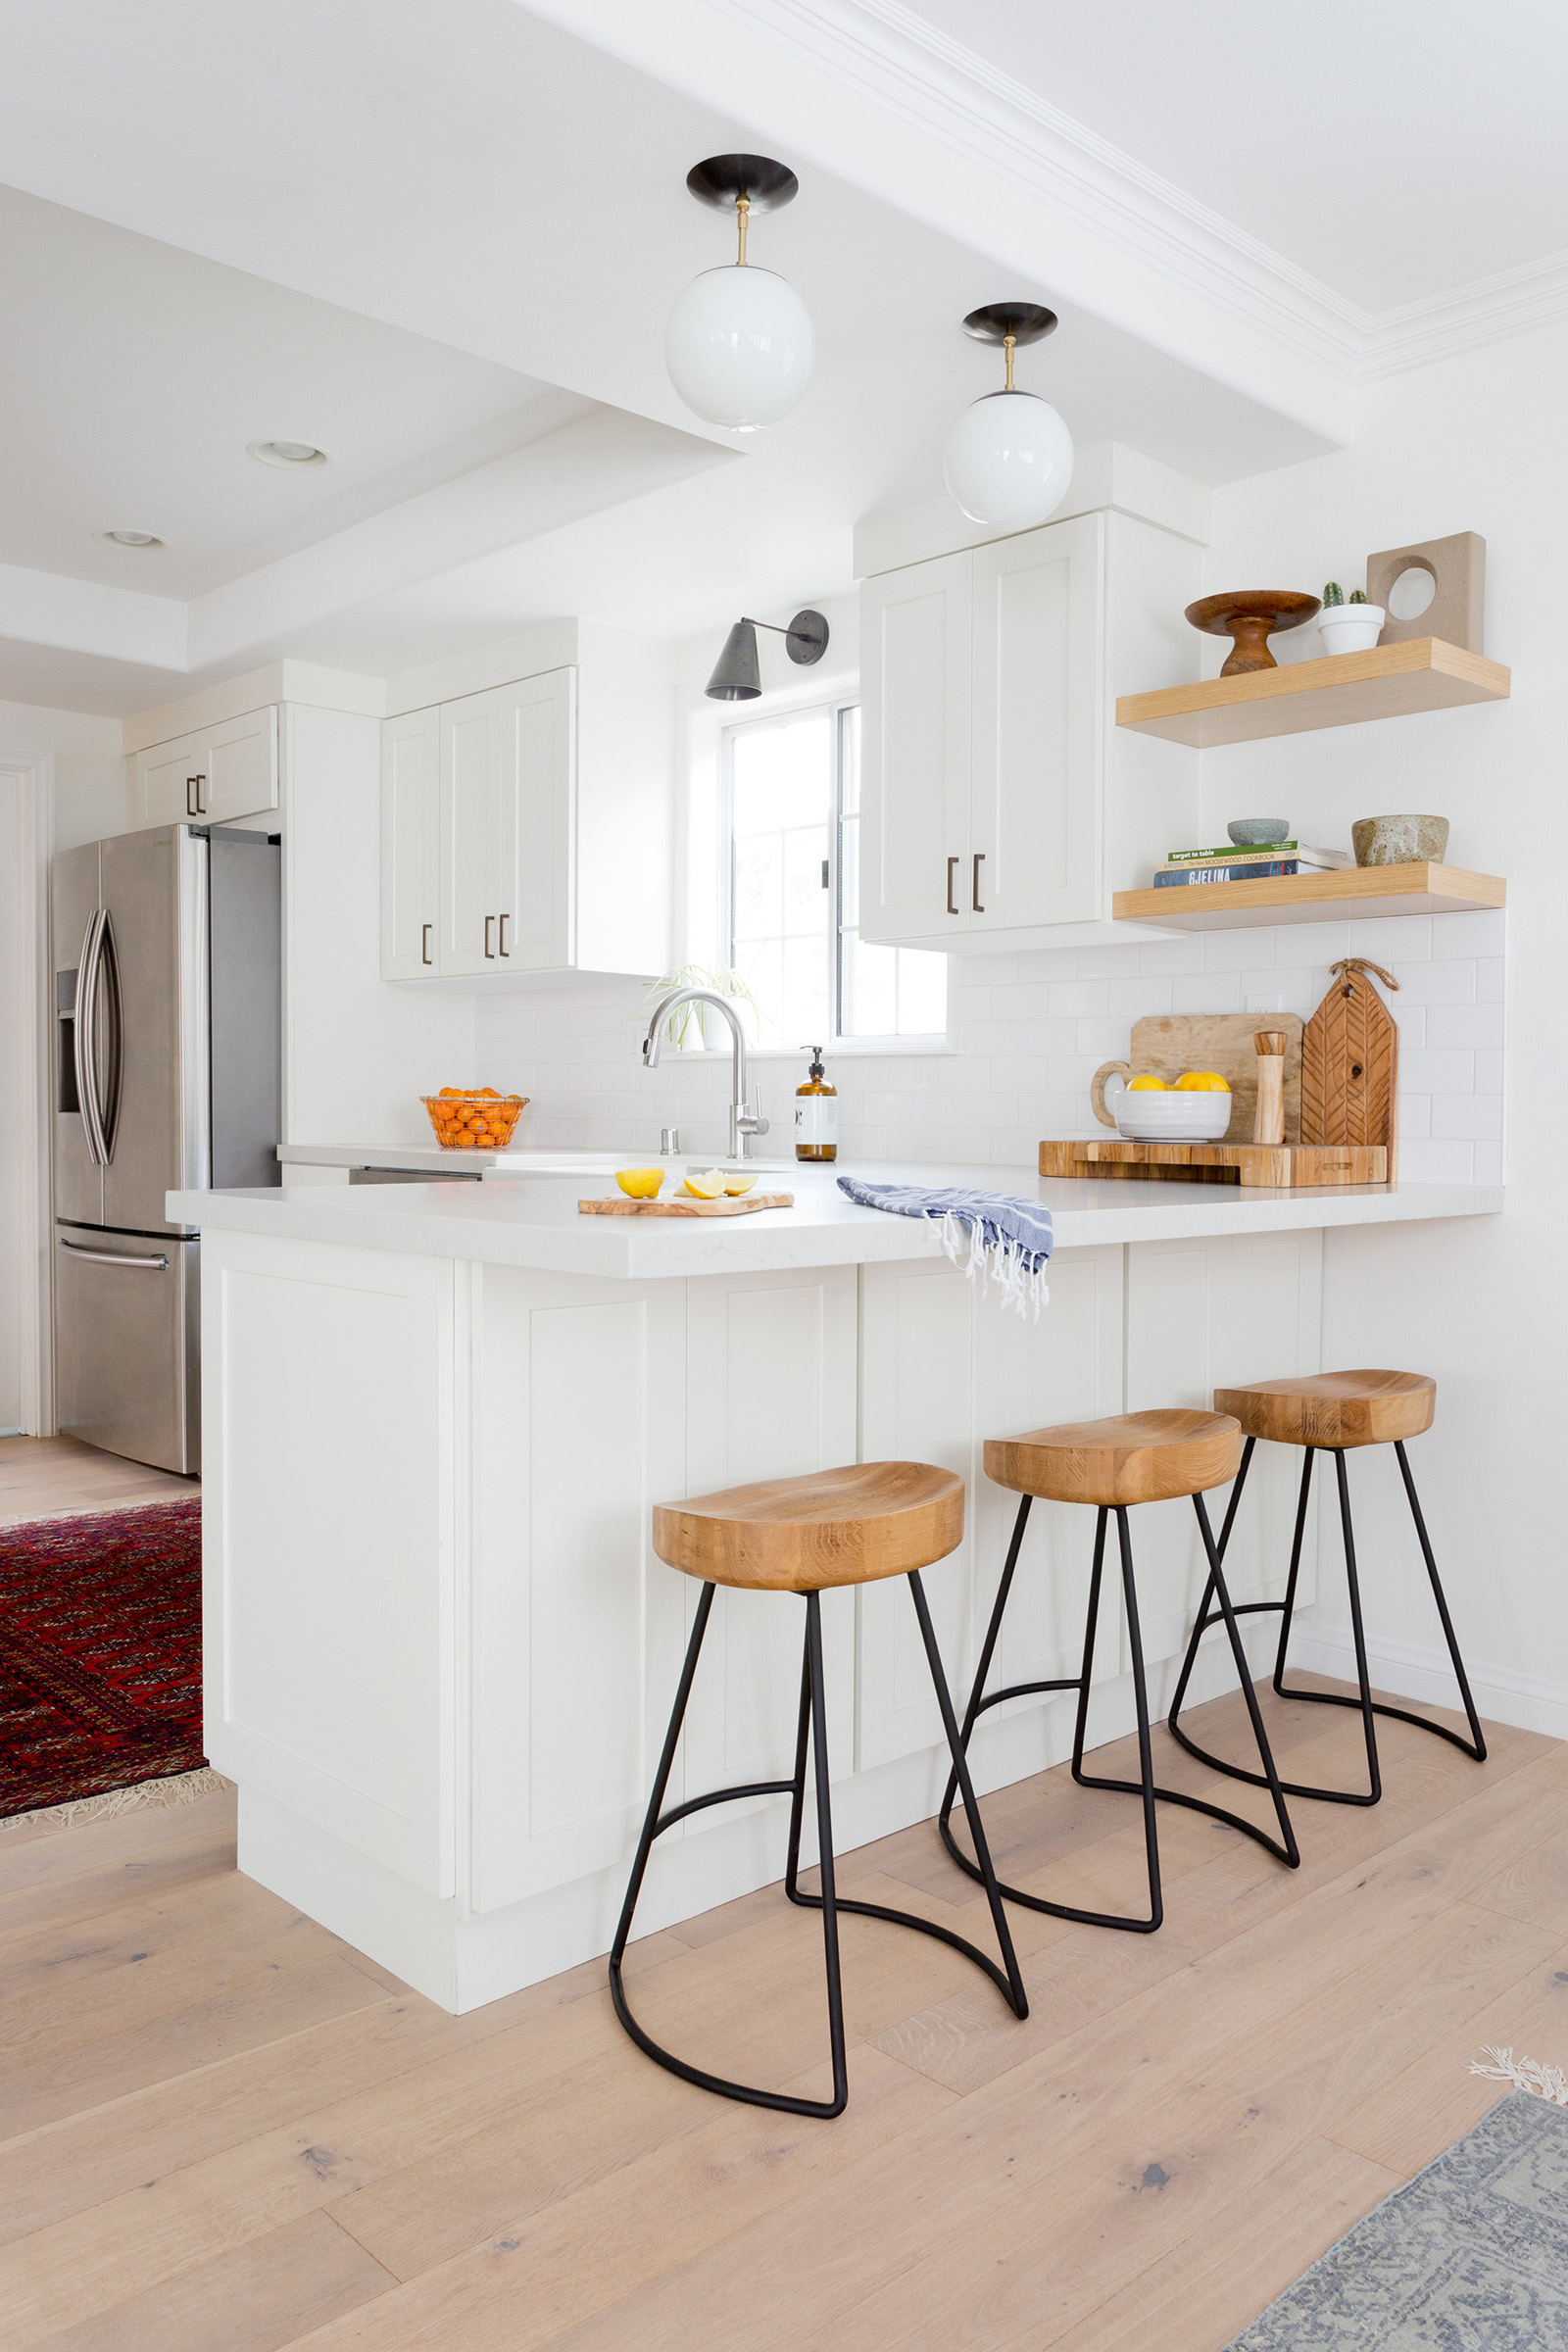 Modern, white clean kitchen design by Carly Waters Style